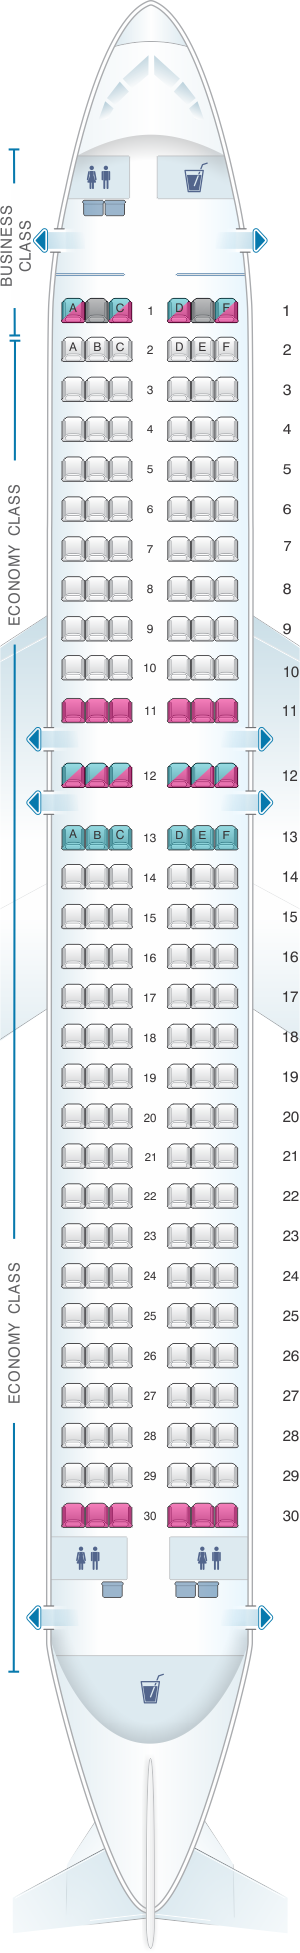 seat map airberlin airbus a320 200 seatmaestro. Black Bedroom Furniture Sets. Home Design Ideas